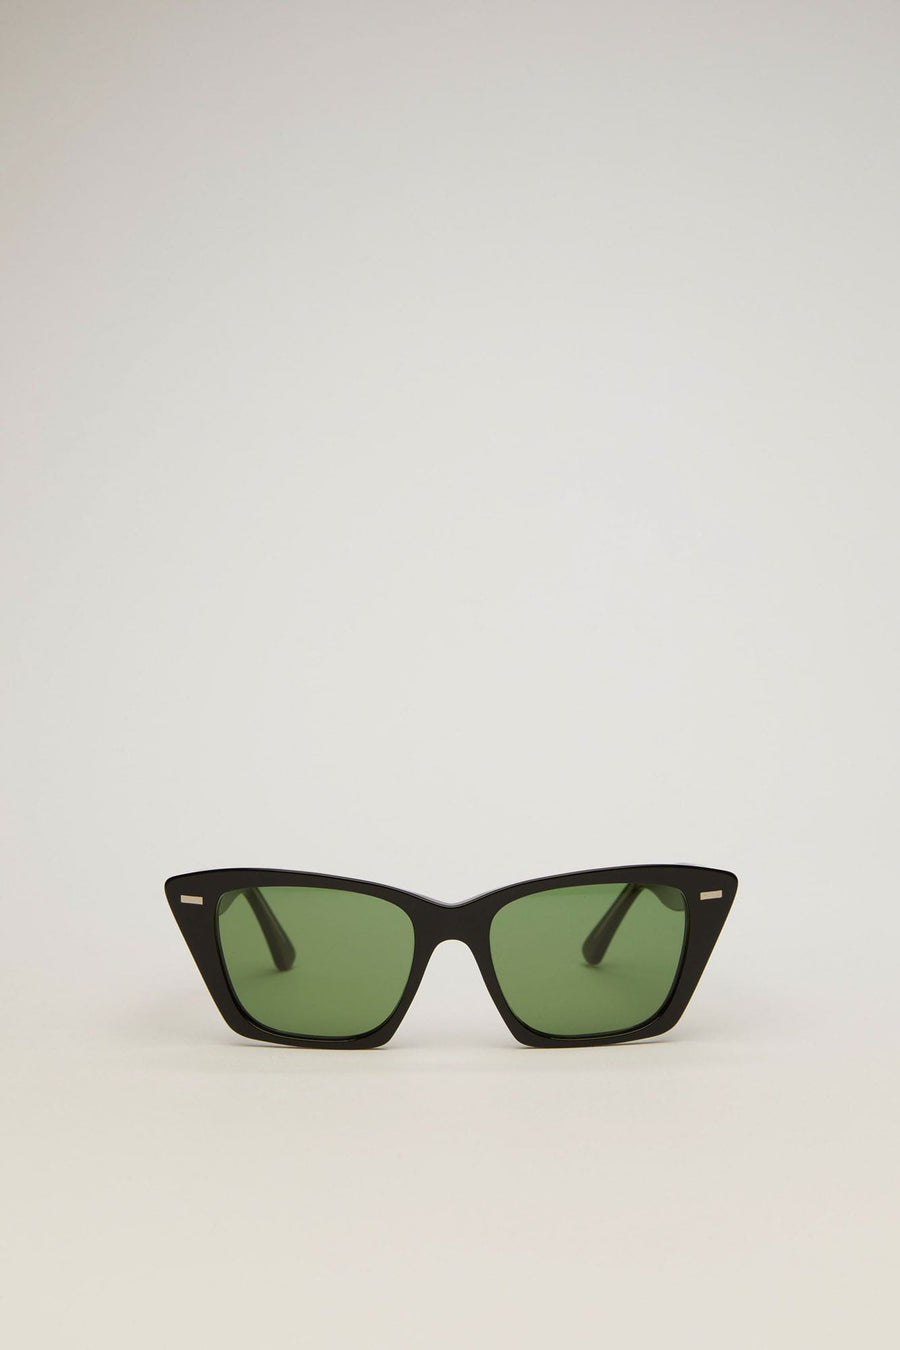 Ingridh Sunglasses-black/yellow/green